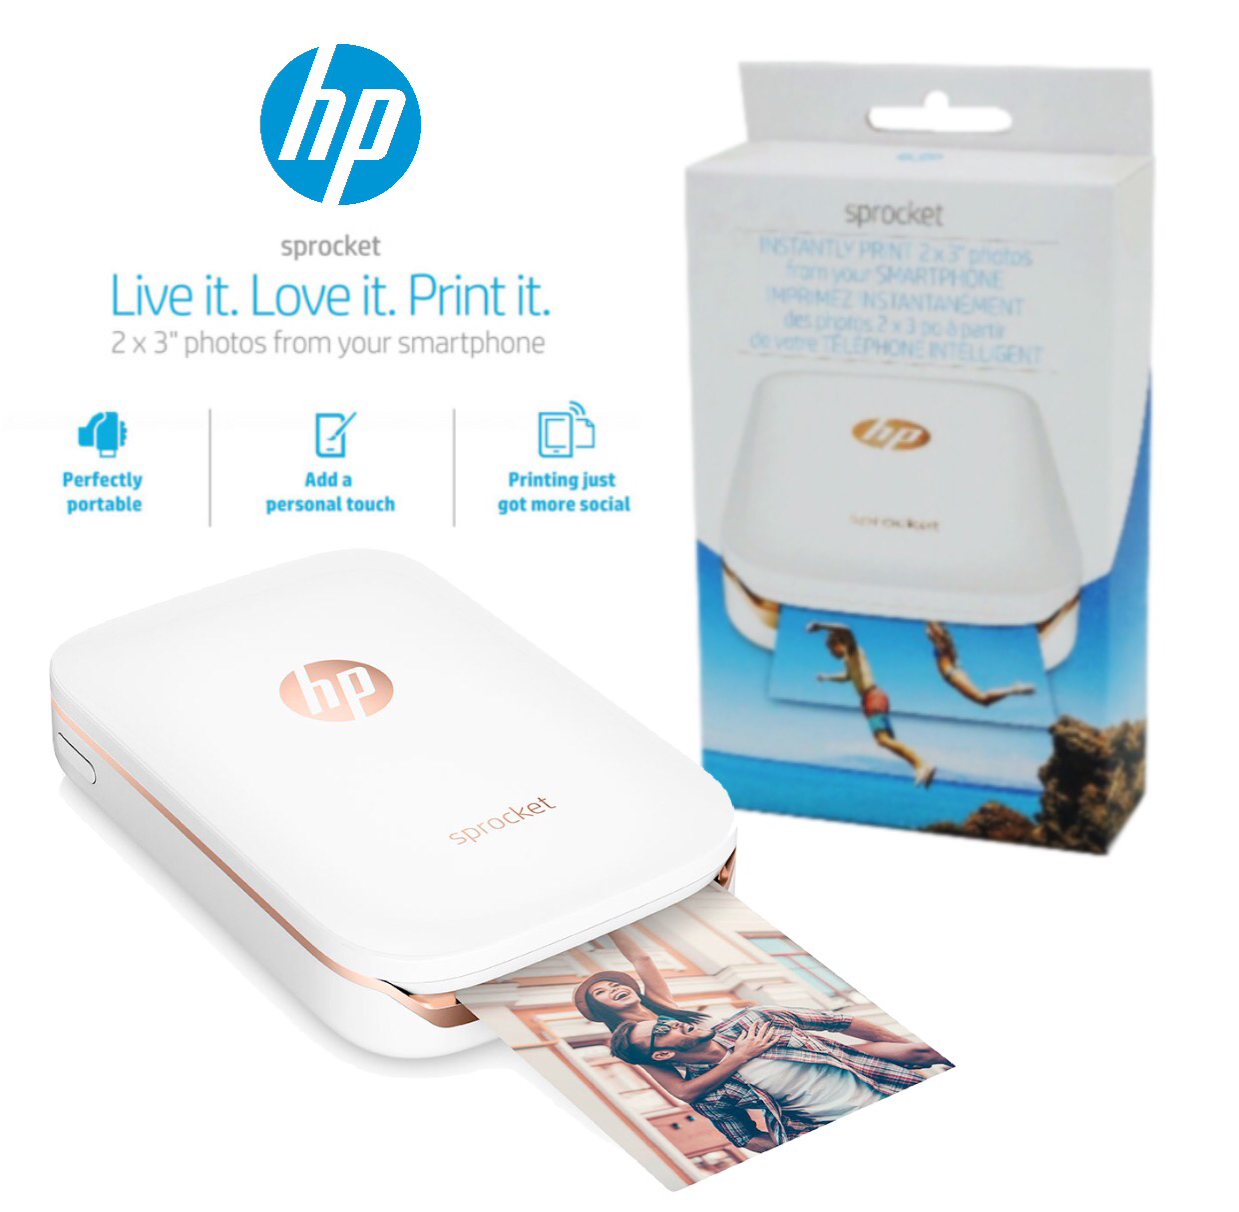 HP Sprocket 100 Portable Photo Printer - White